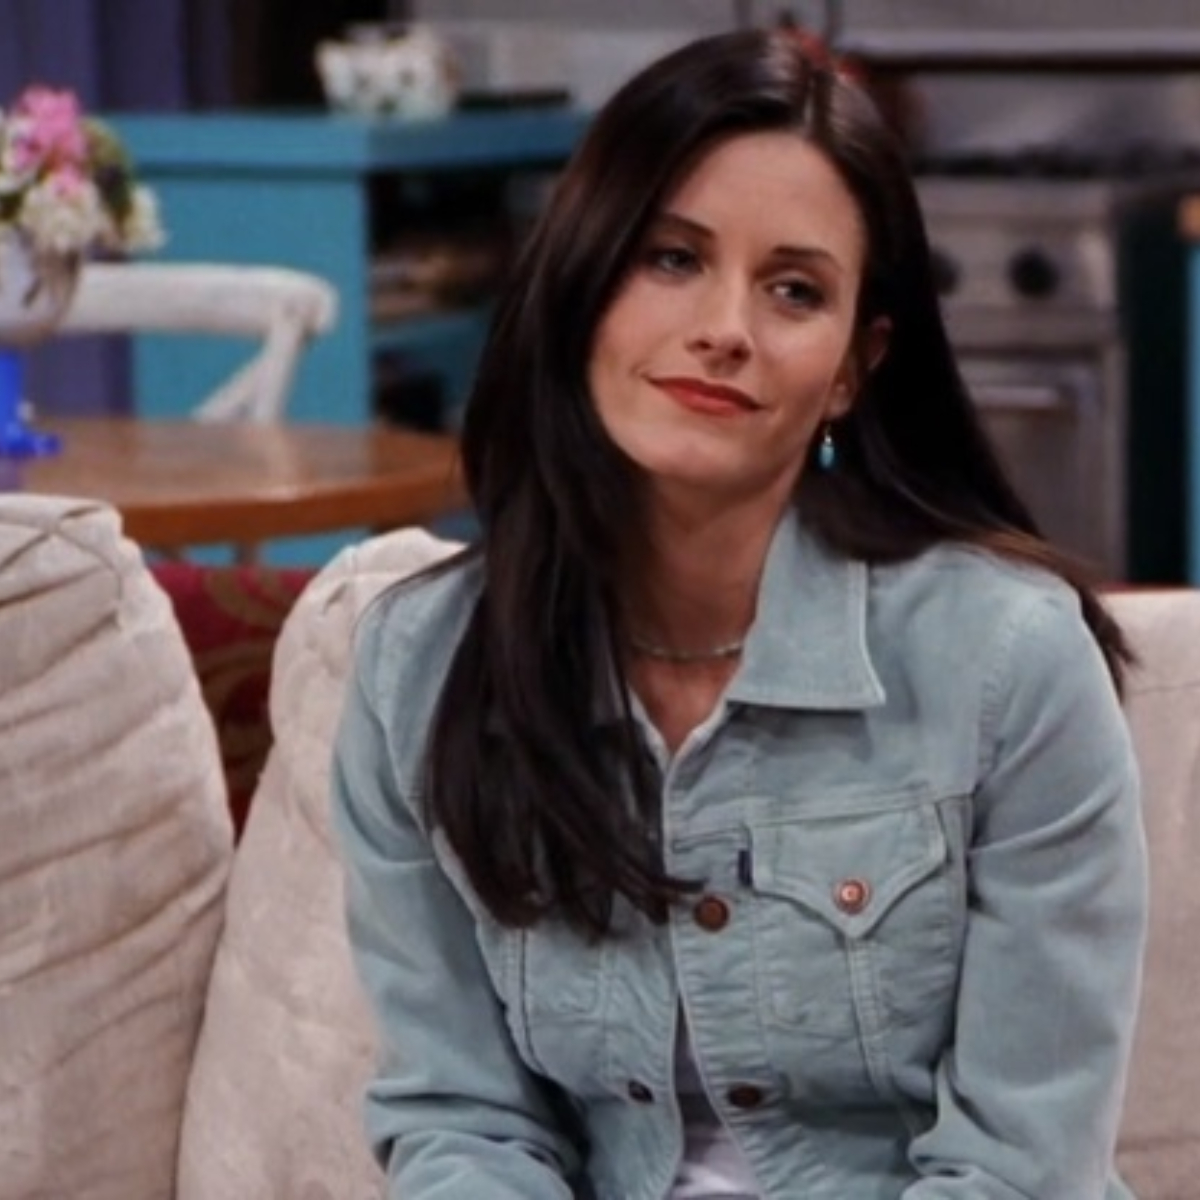 FRIENDS: Check out Monica Geller's TOP 10 iconic dialogues from ...